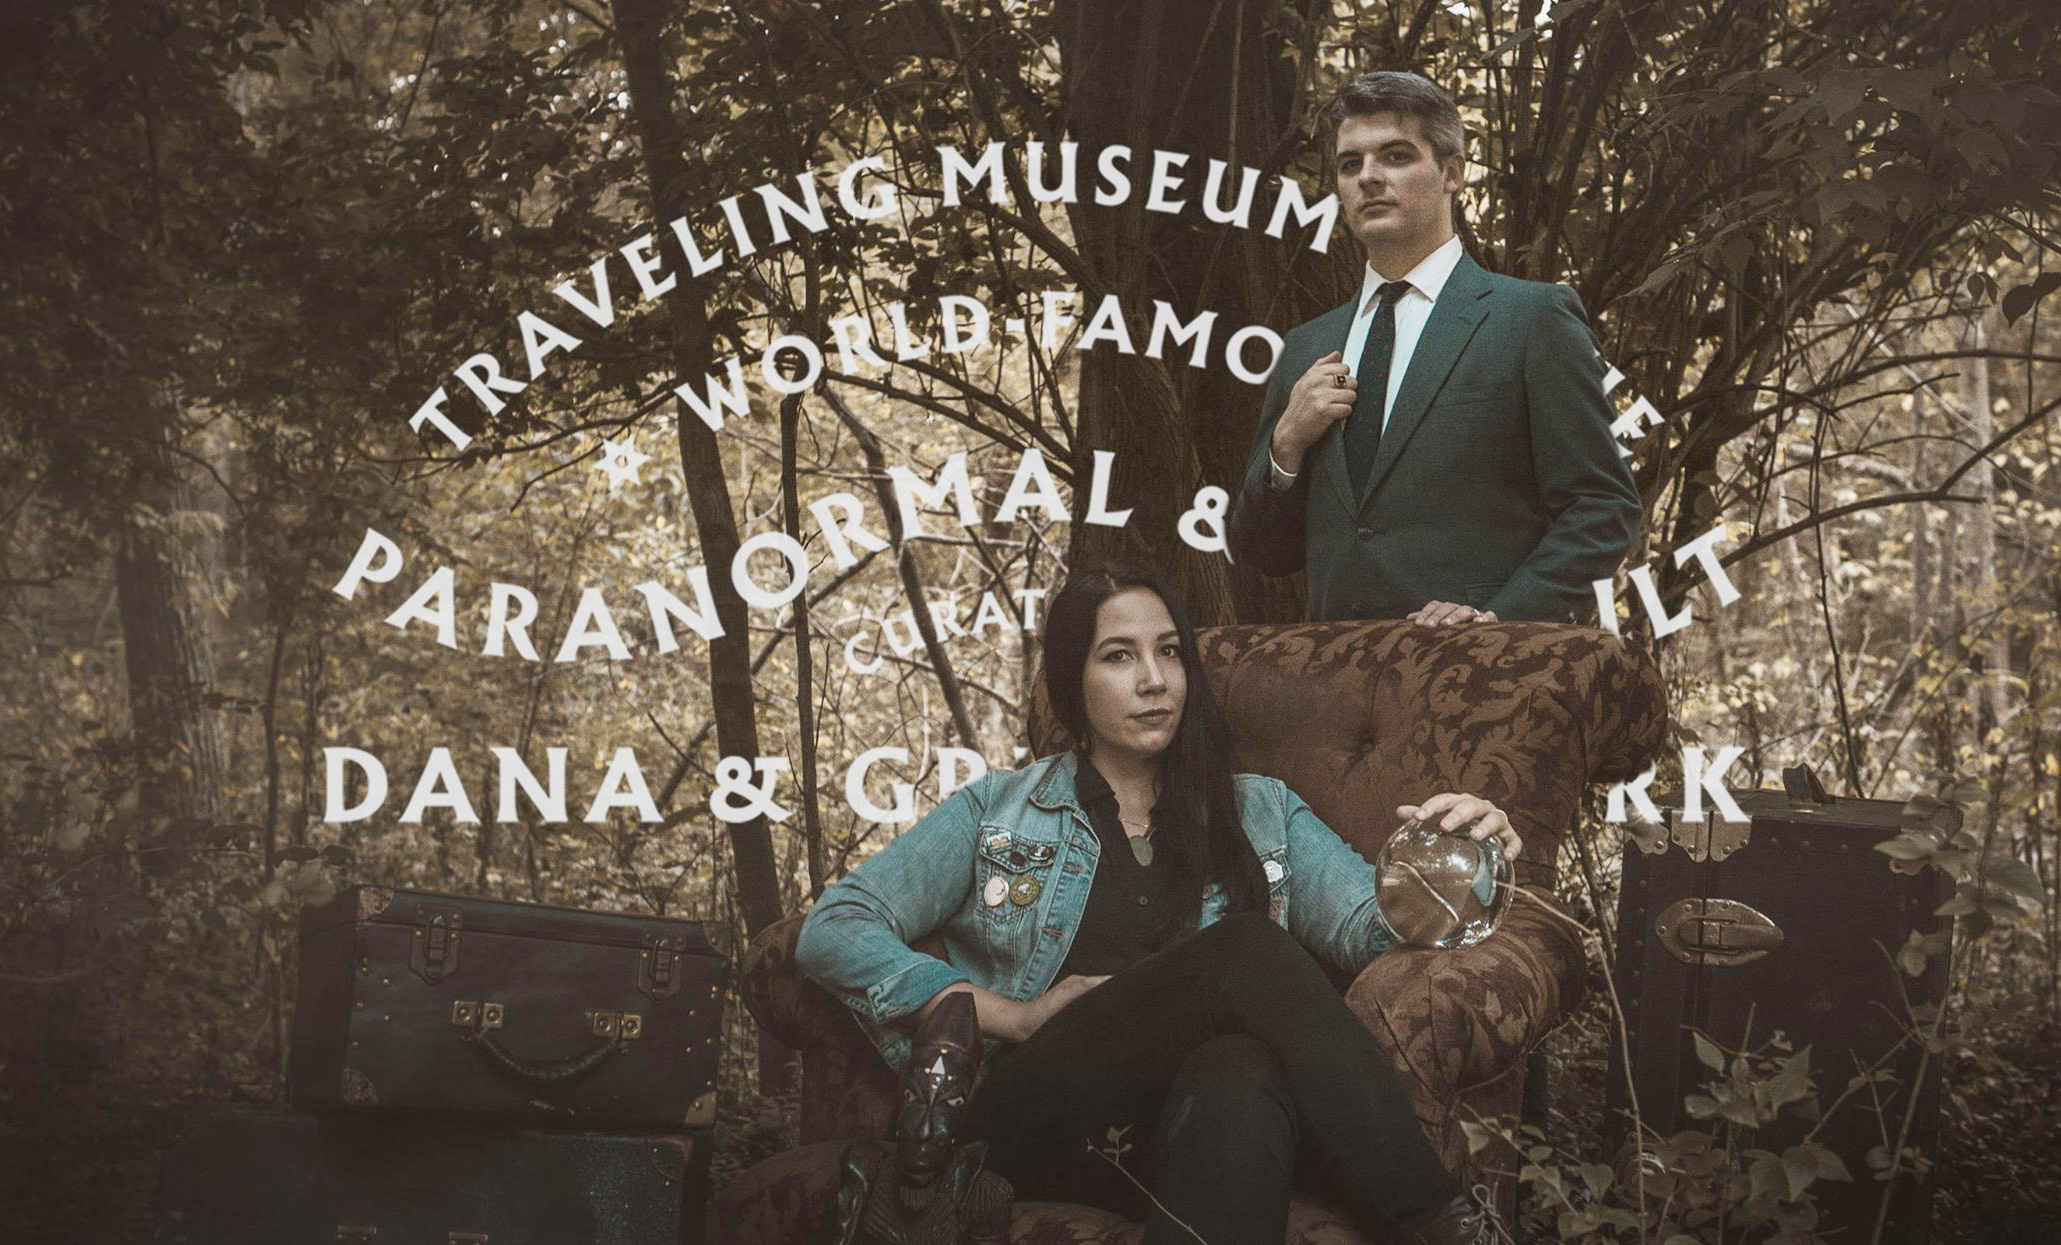 Dana and Greg Newkirk are internationally-recognized authorities on paranormal investigation, witchcraft, and haunted artifacts.